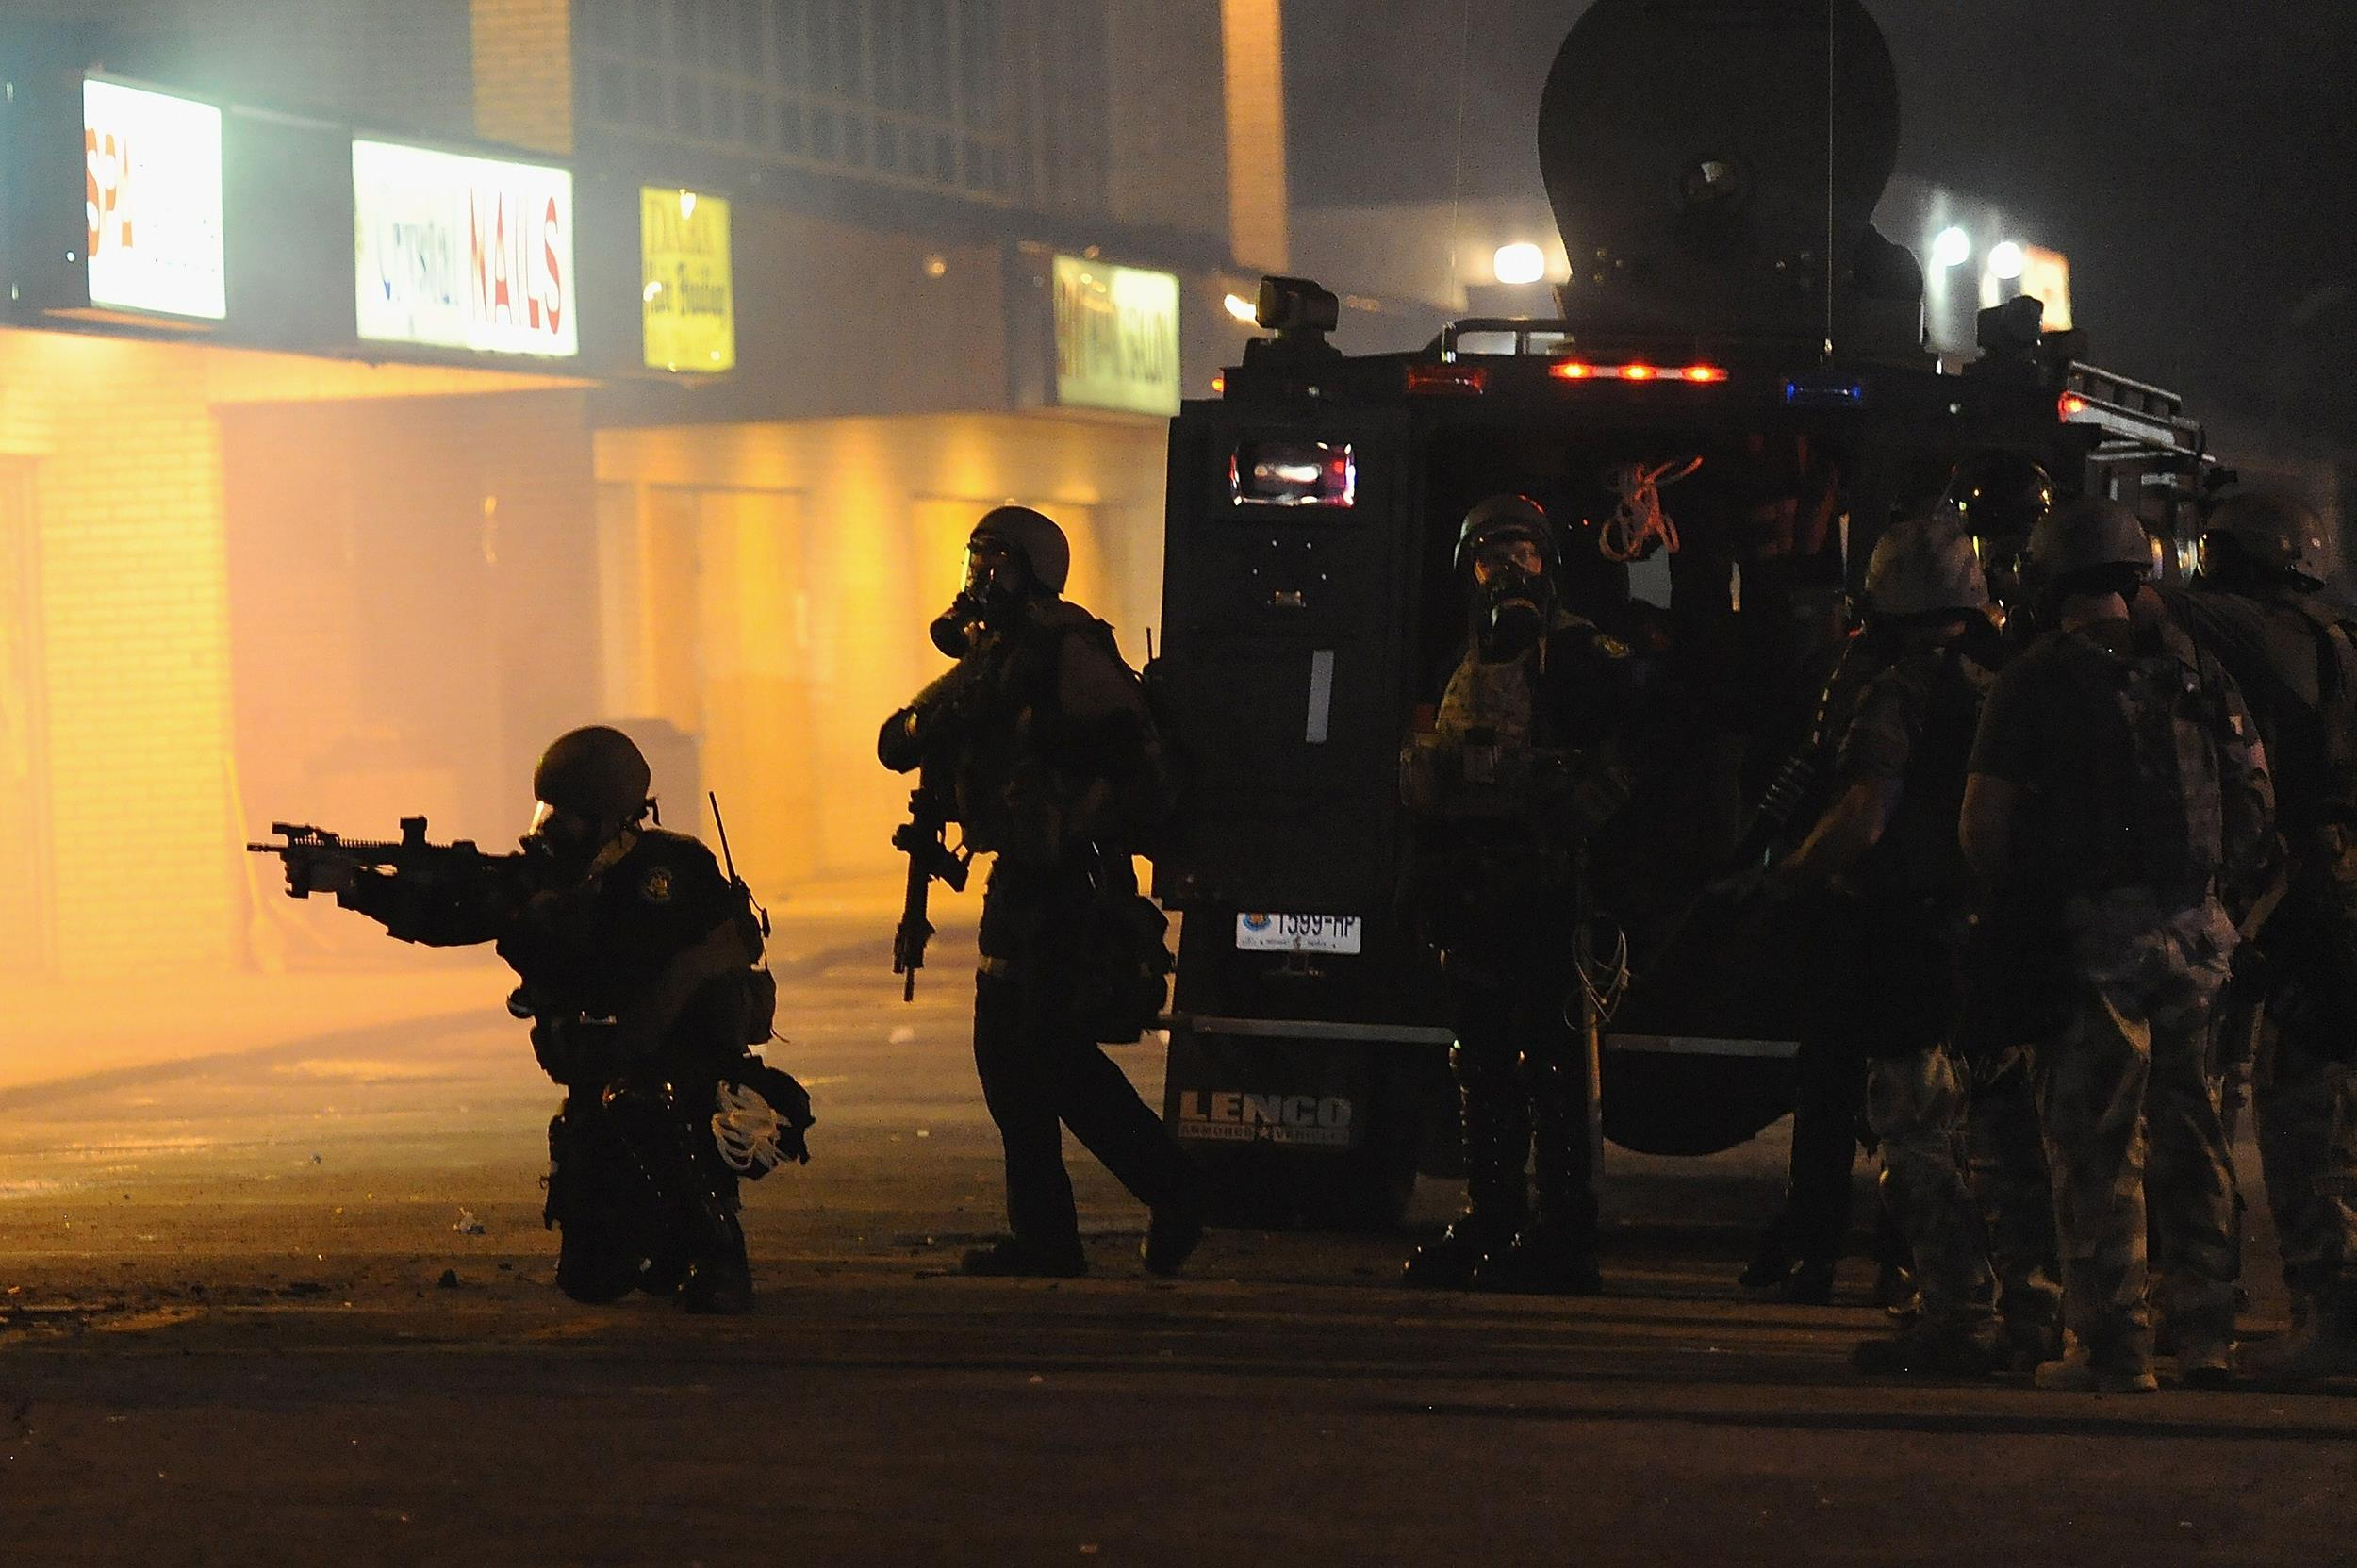 Image: Police officers fire canisters of tear gas on protestors as they try to flee from West Florissant Road